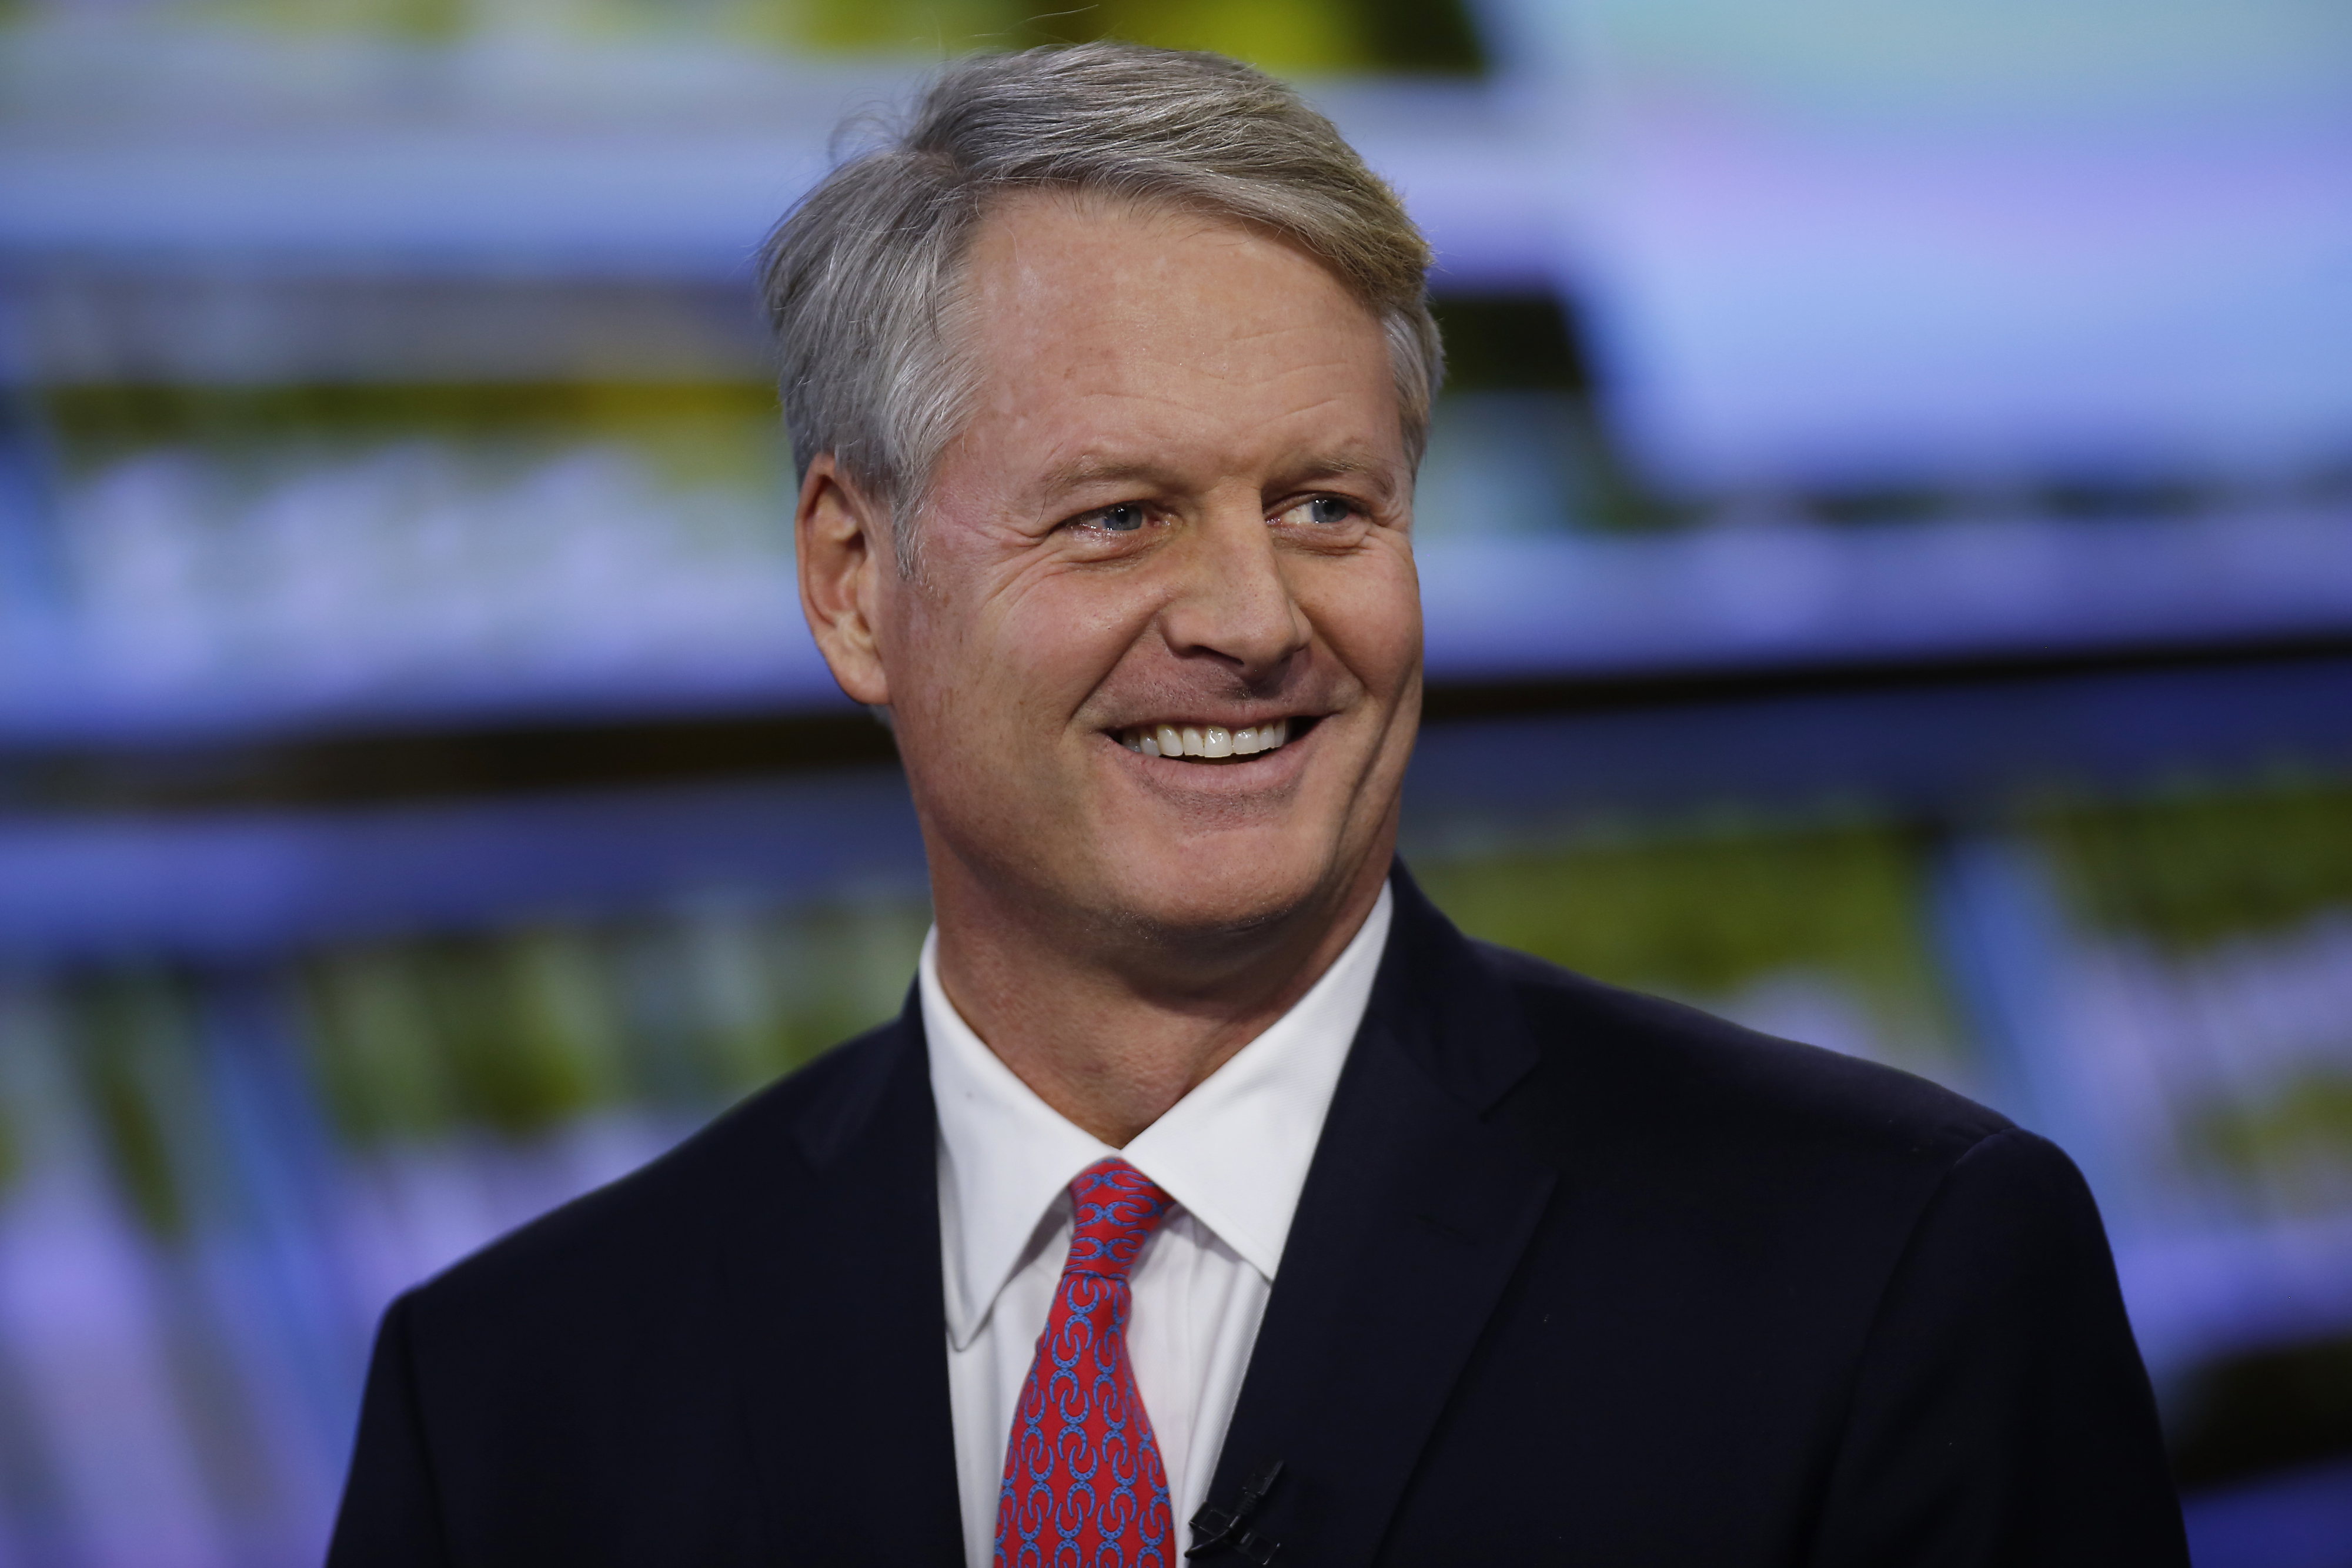 Ebay Inc. CEO John Donahoe Interview